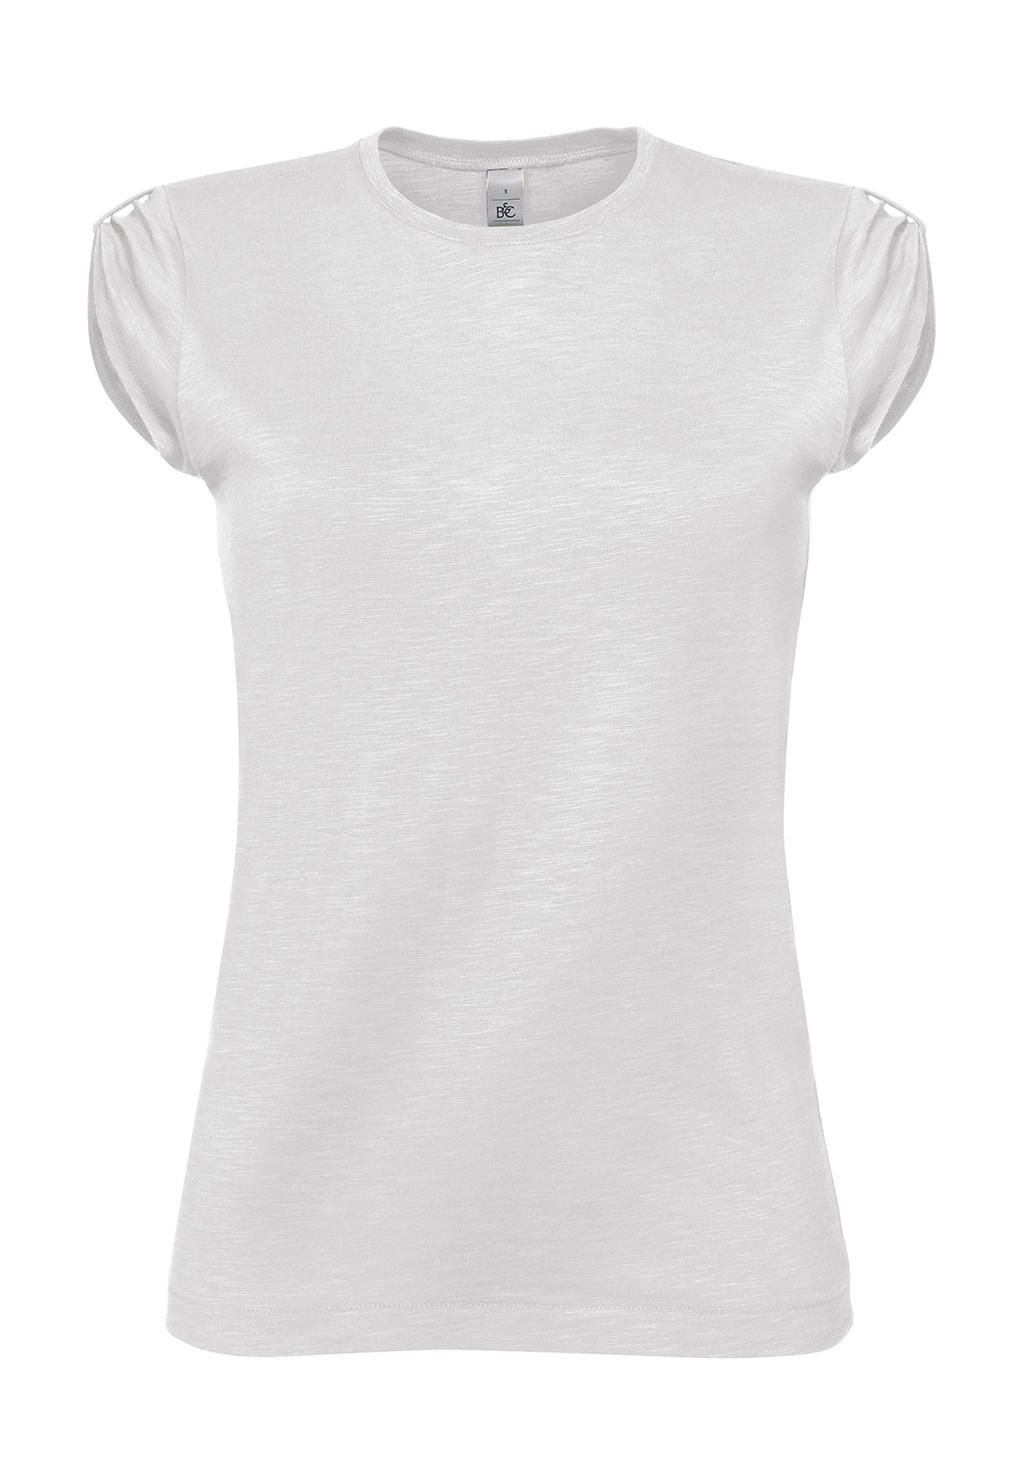 Too Chic/women Top